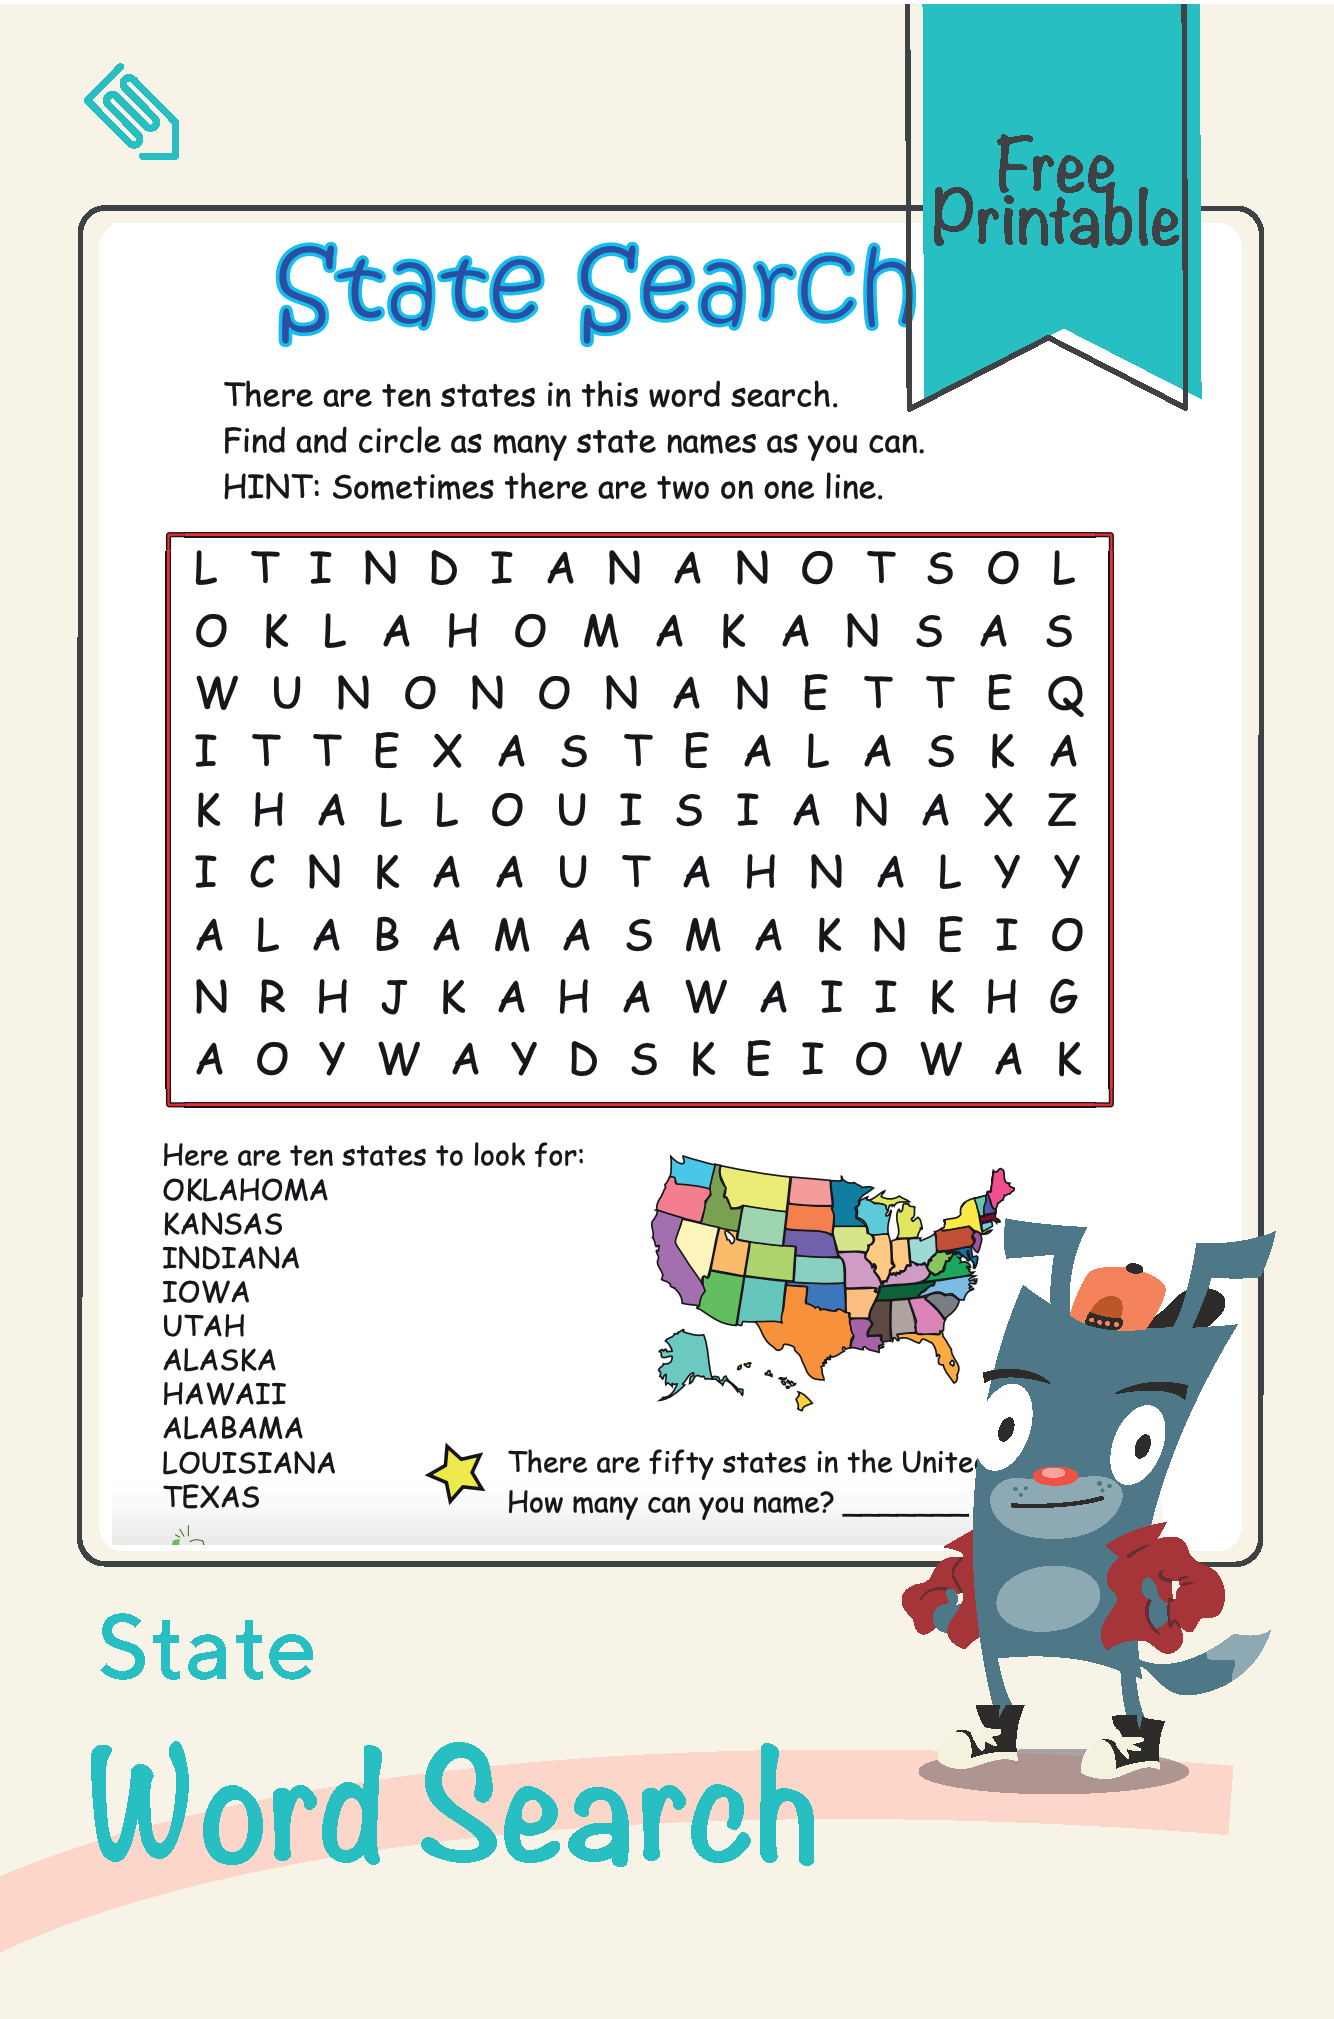 State Word Search